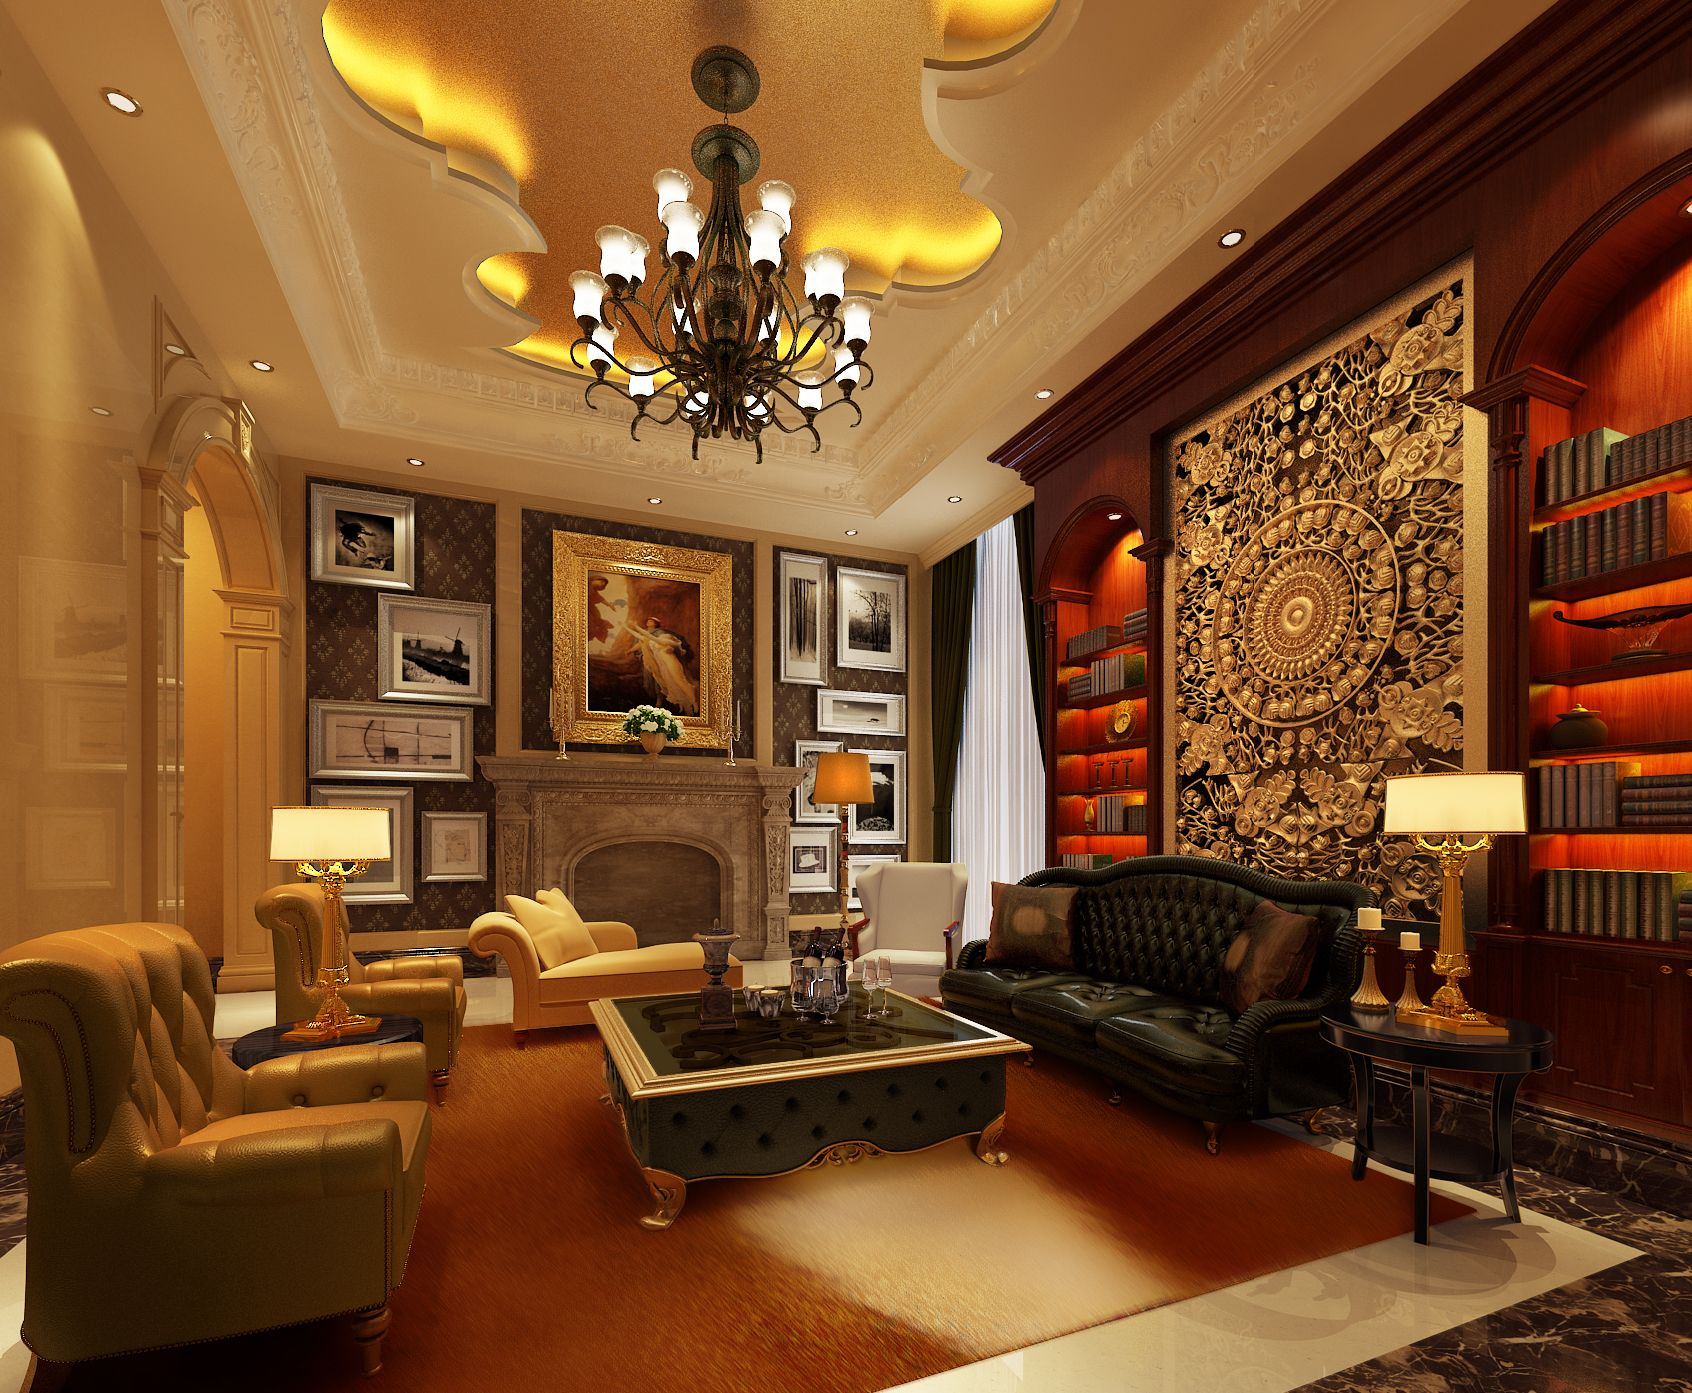 Luxury Living Room And Bedroom With Leather Sofa Set And Elegant Chandelier  Interior Design